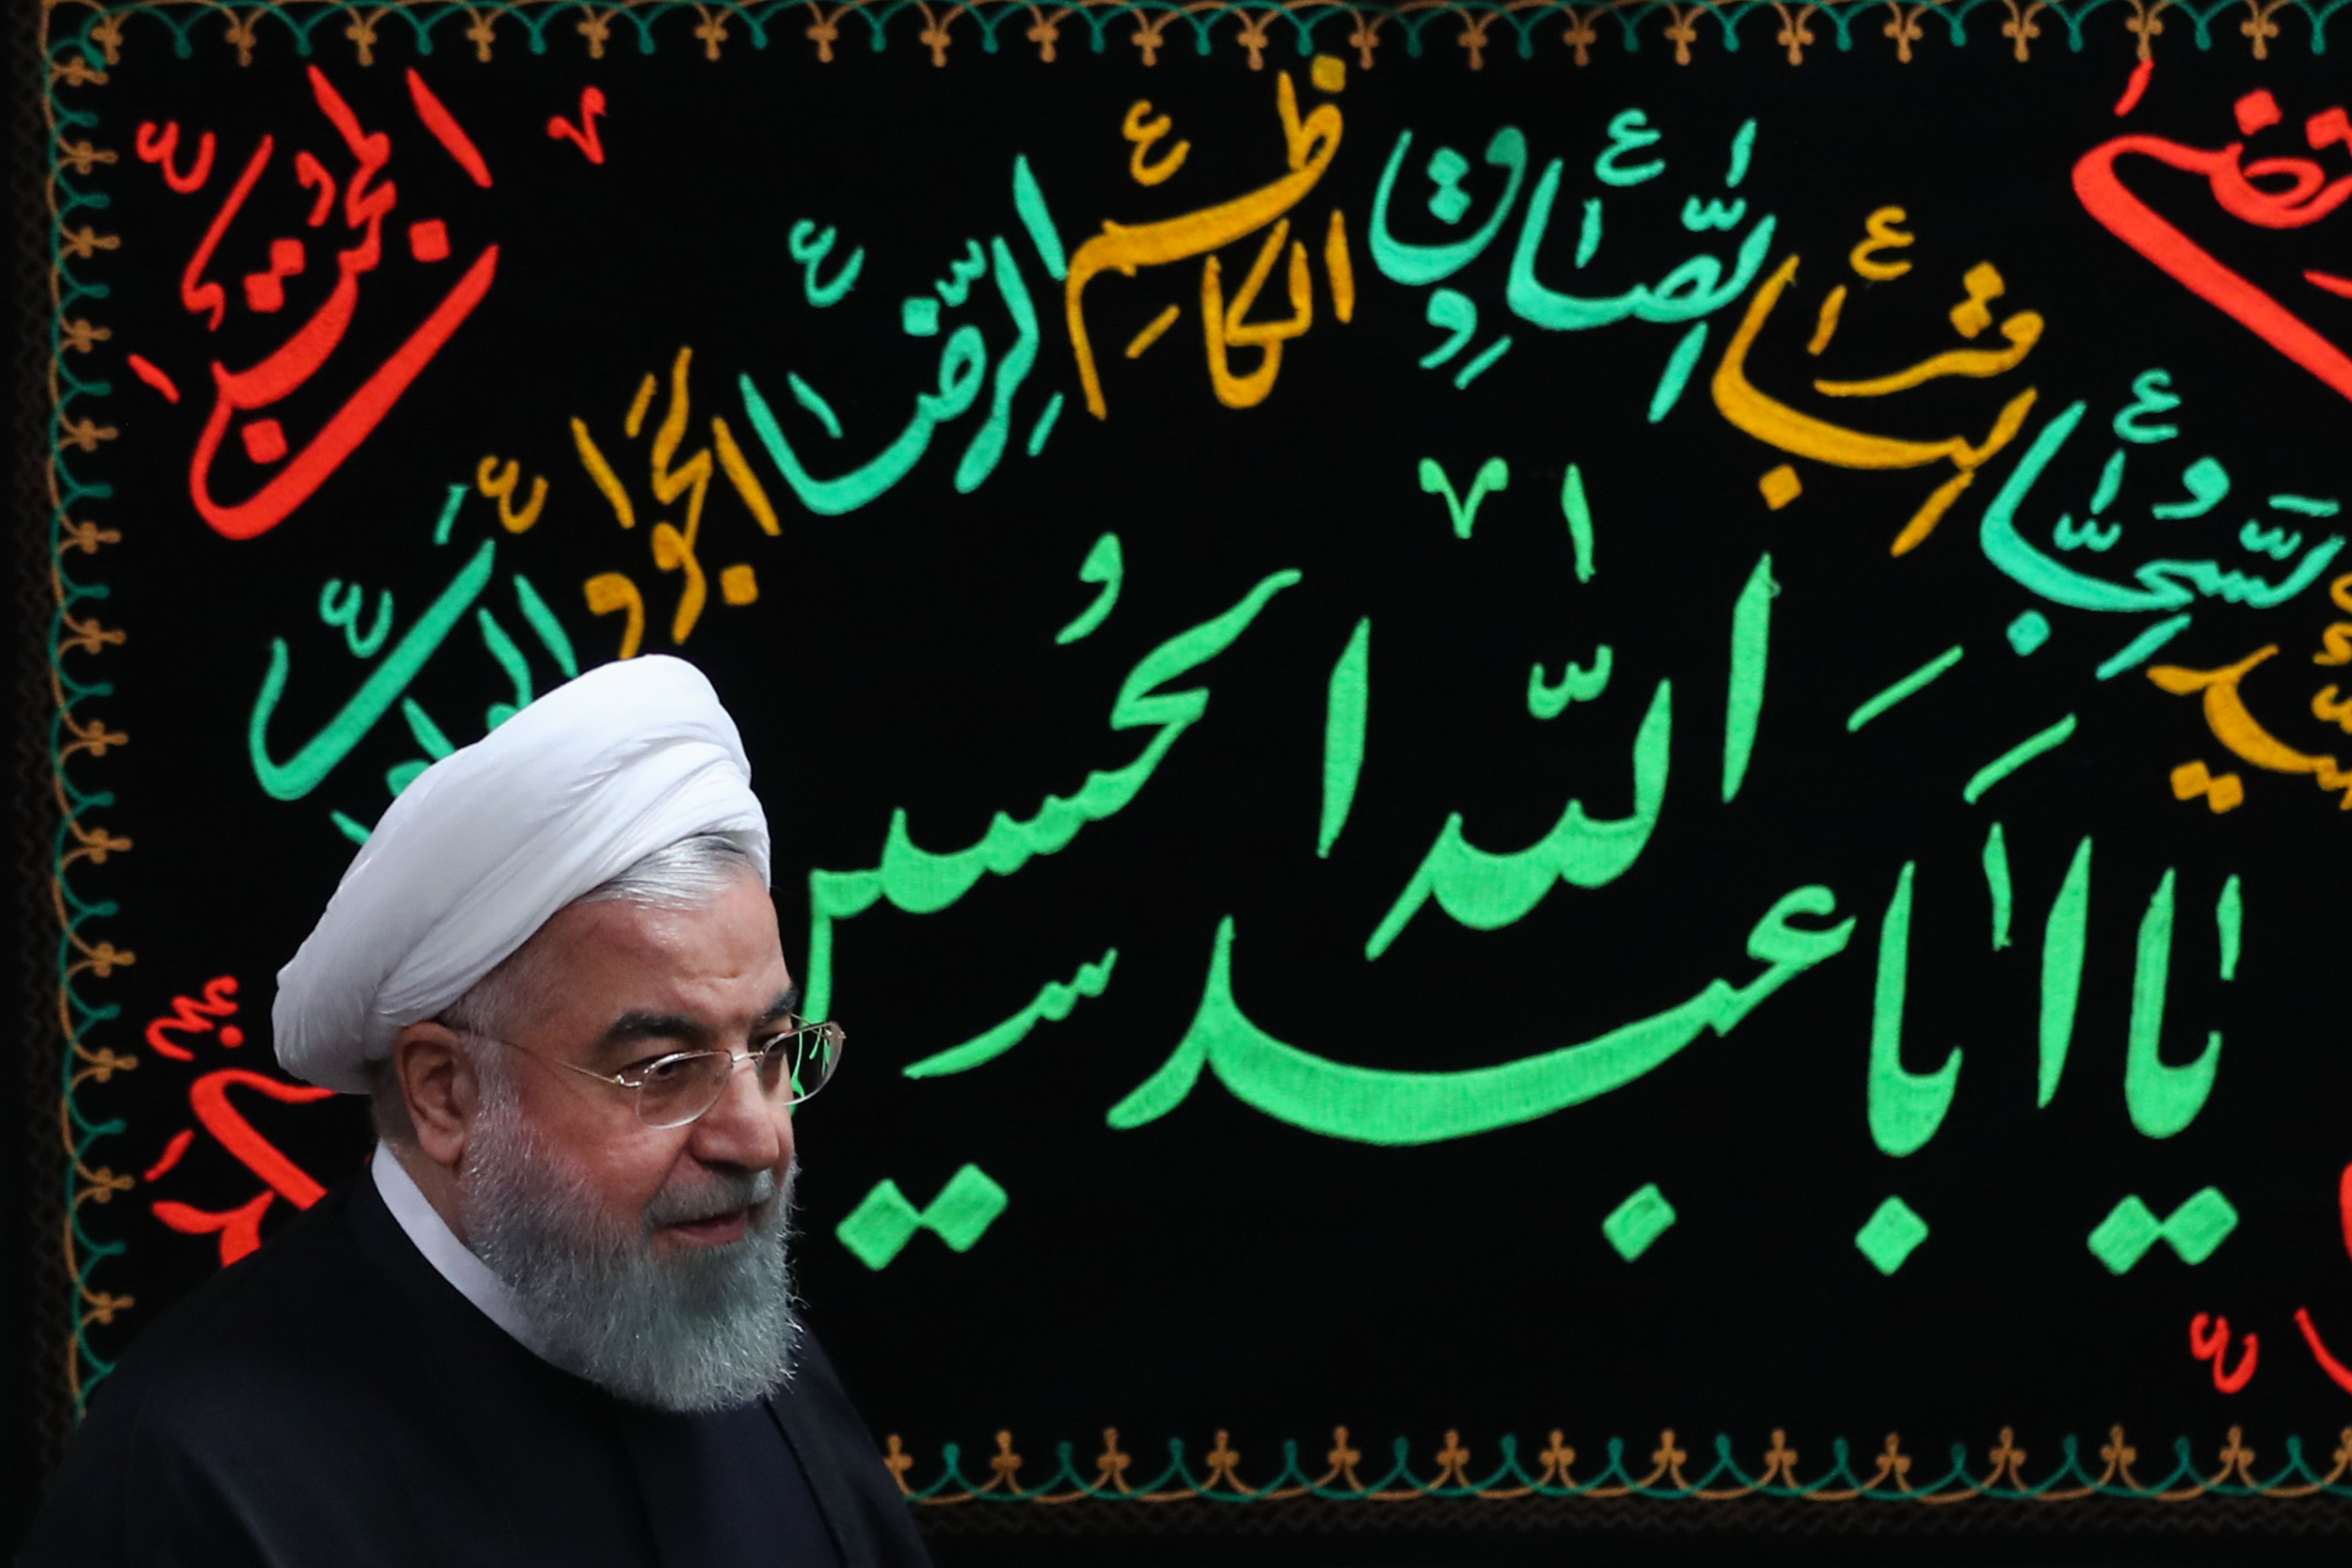 2nd day of Imam Hussein's mourning ceremony